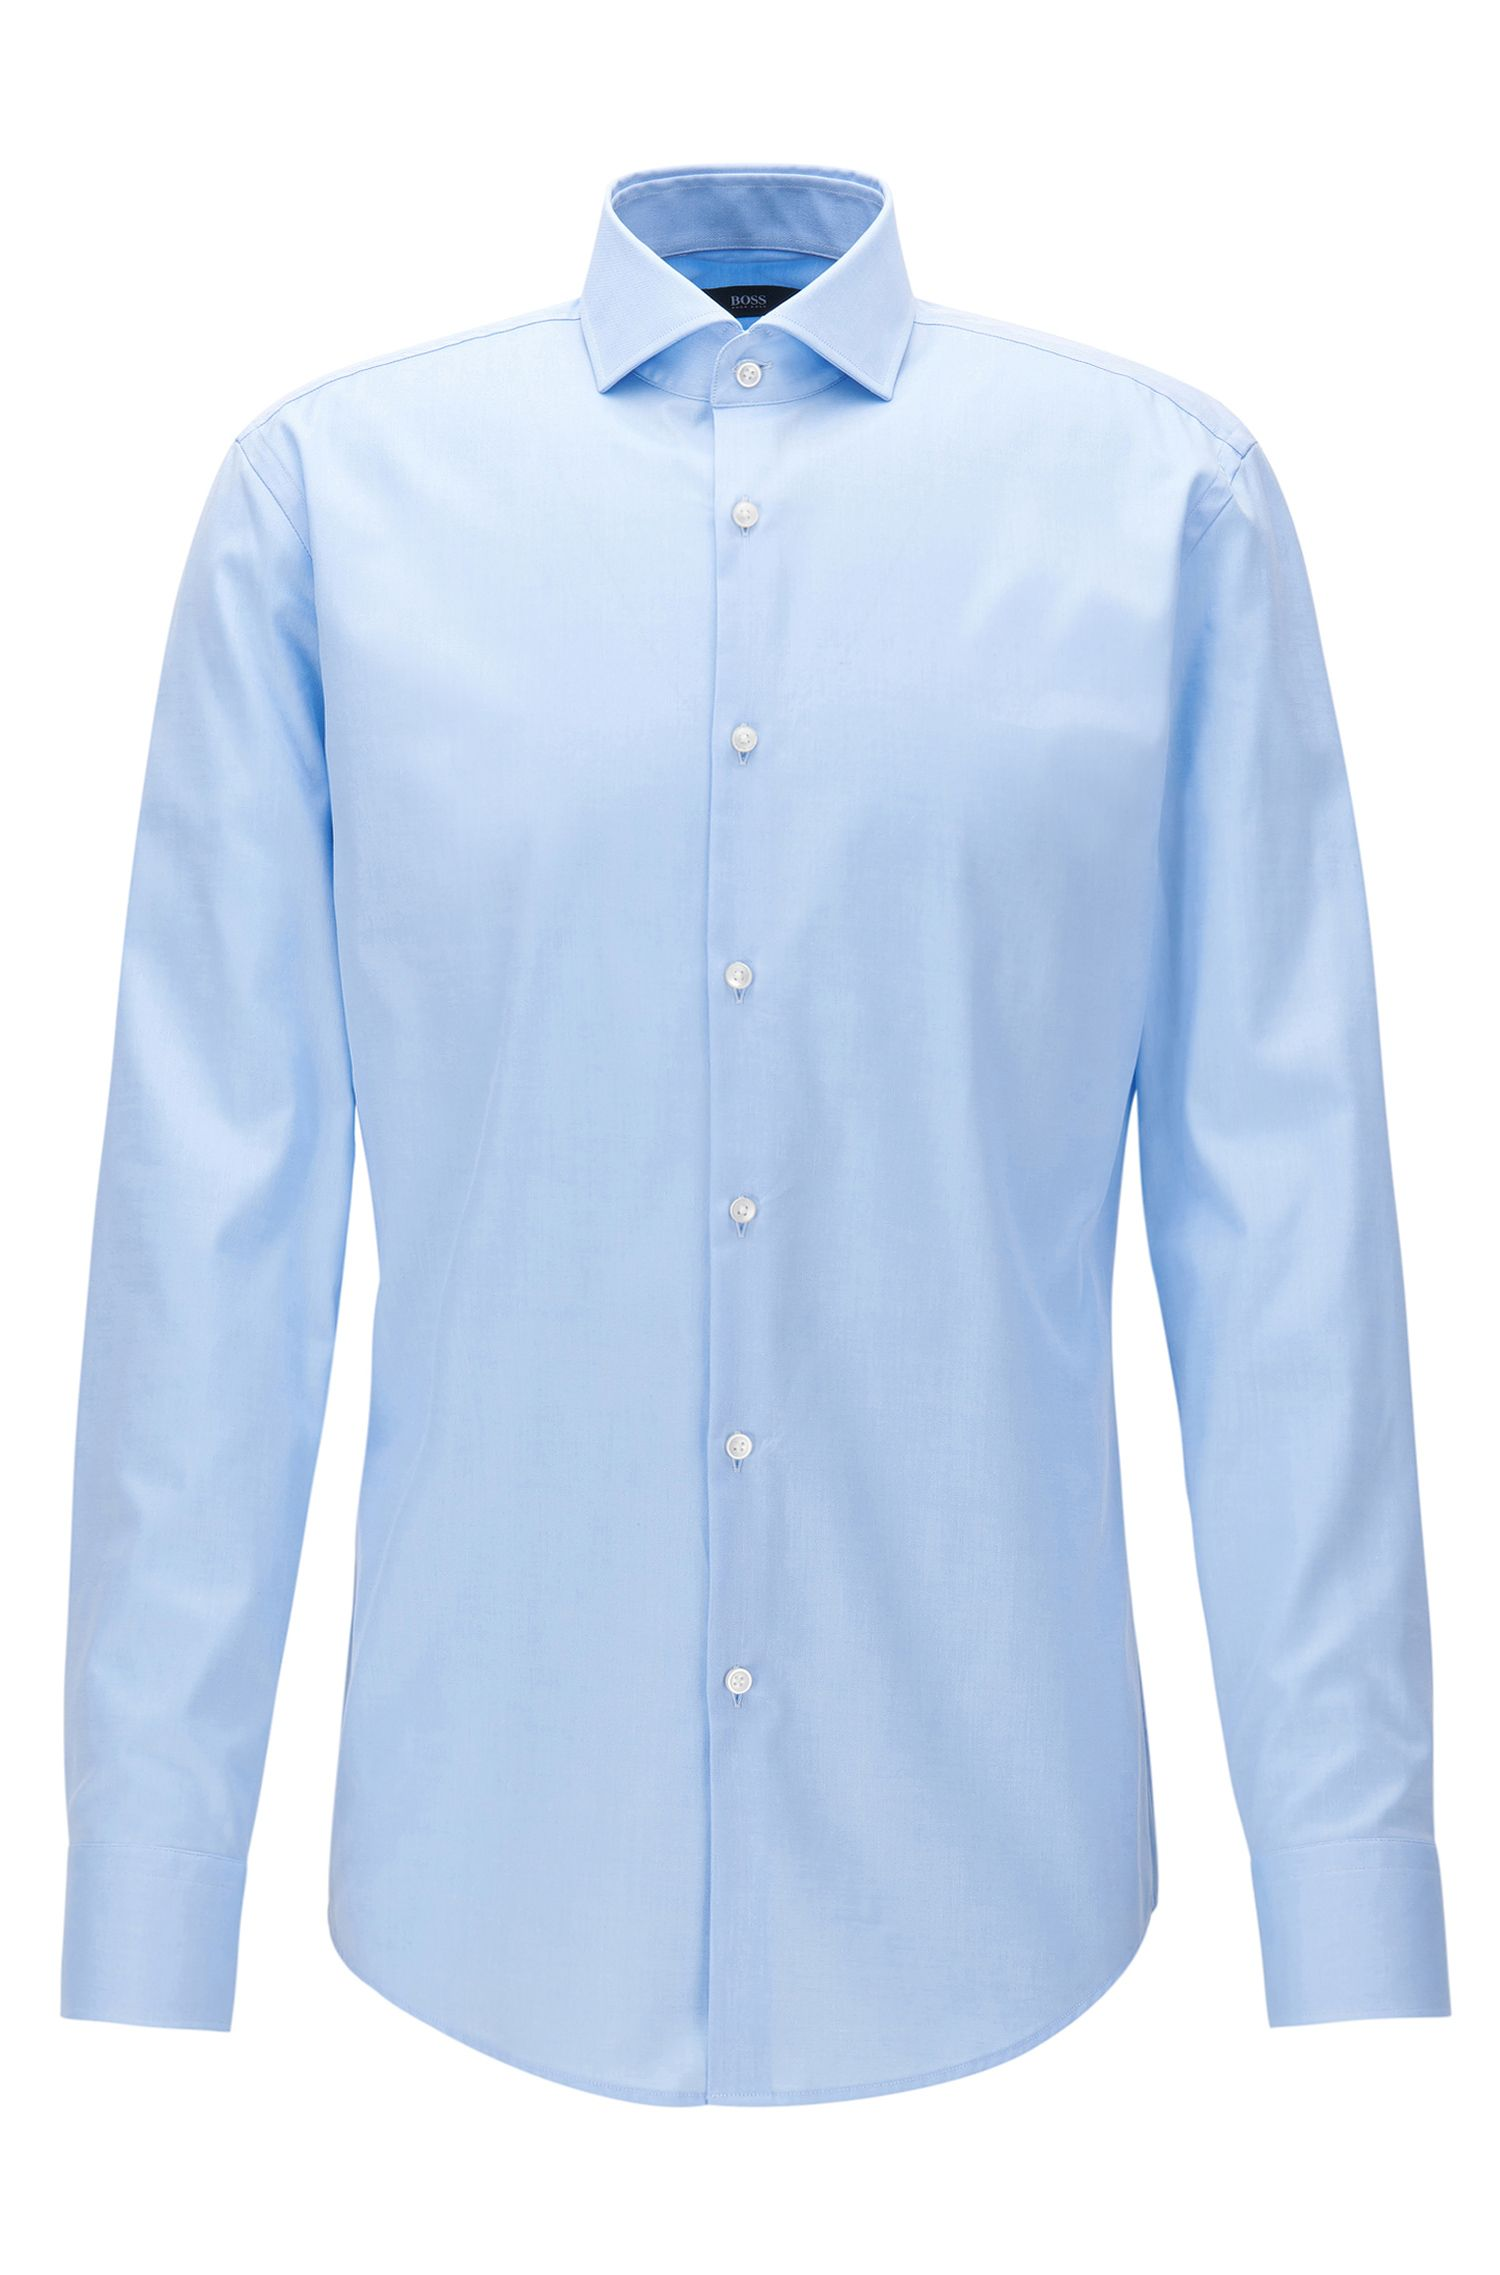 Camicia slim fit in twill di cotone con colletto alla francese